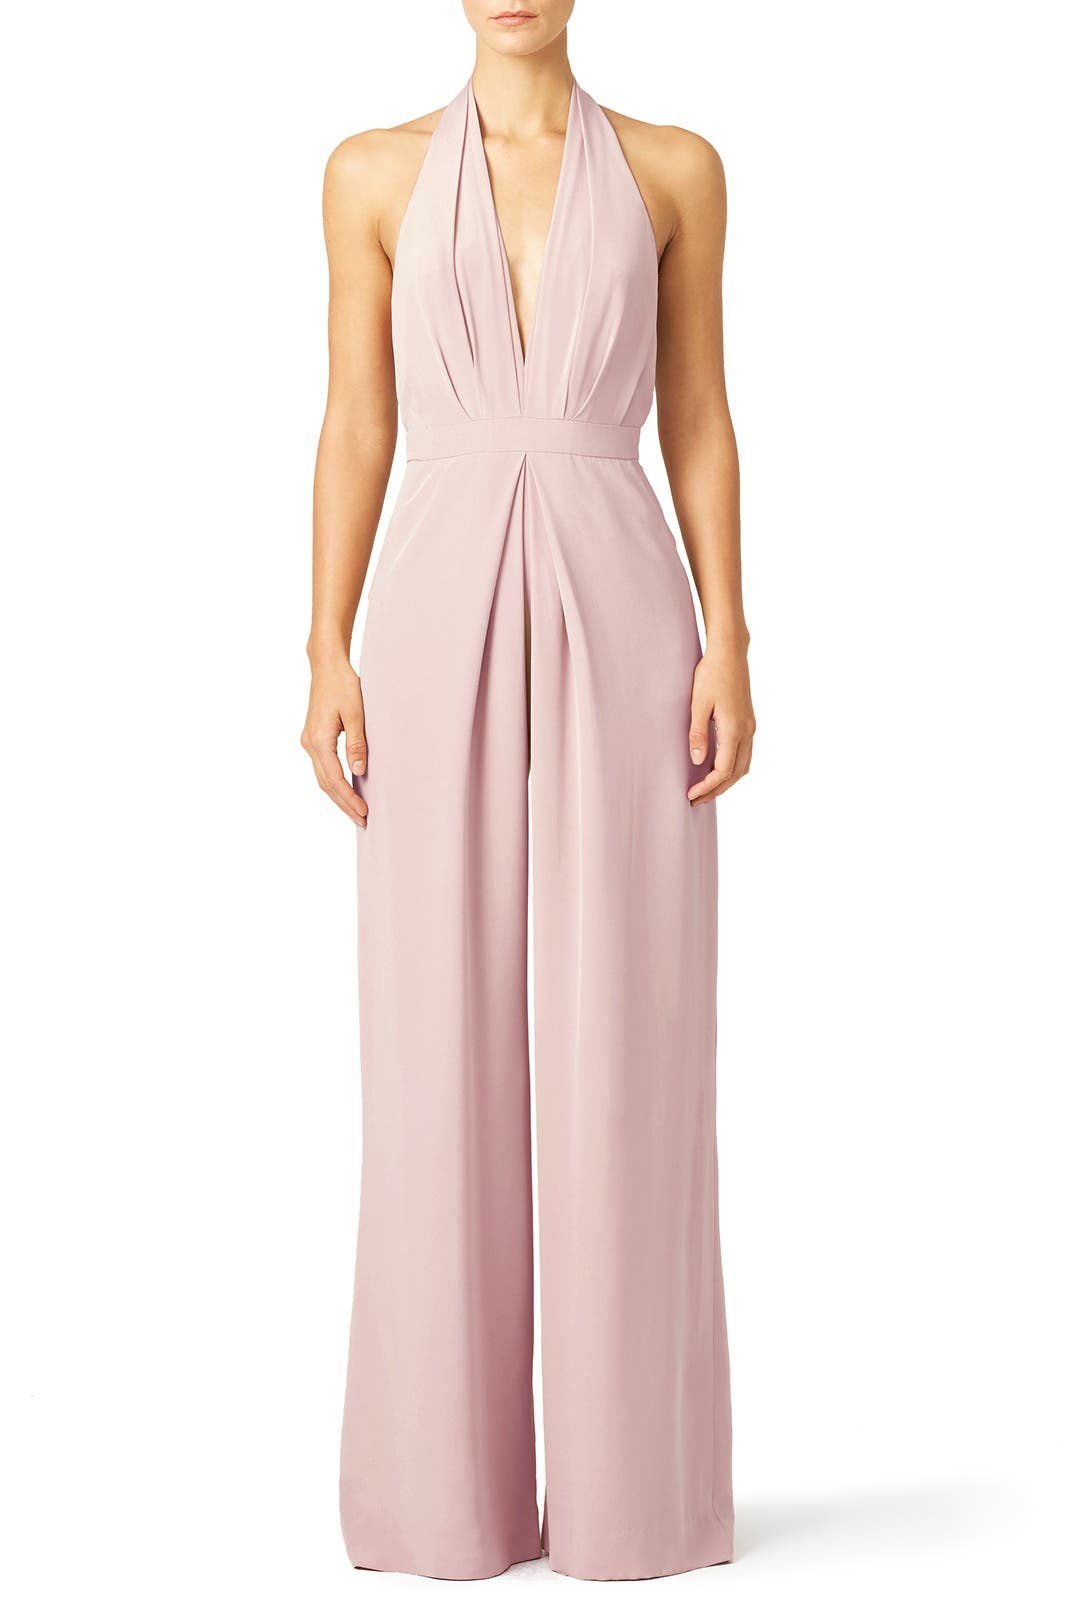 Blush Perfect Pleat Jumpsuit By Jill Jill Stuart For 40